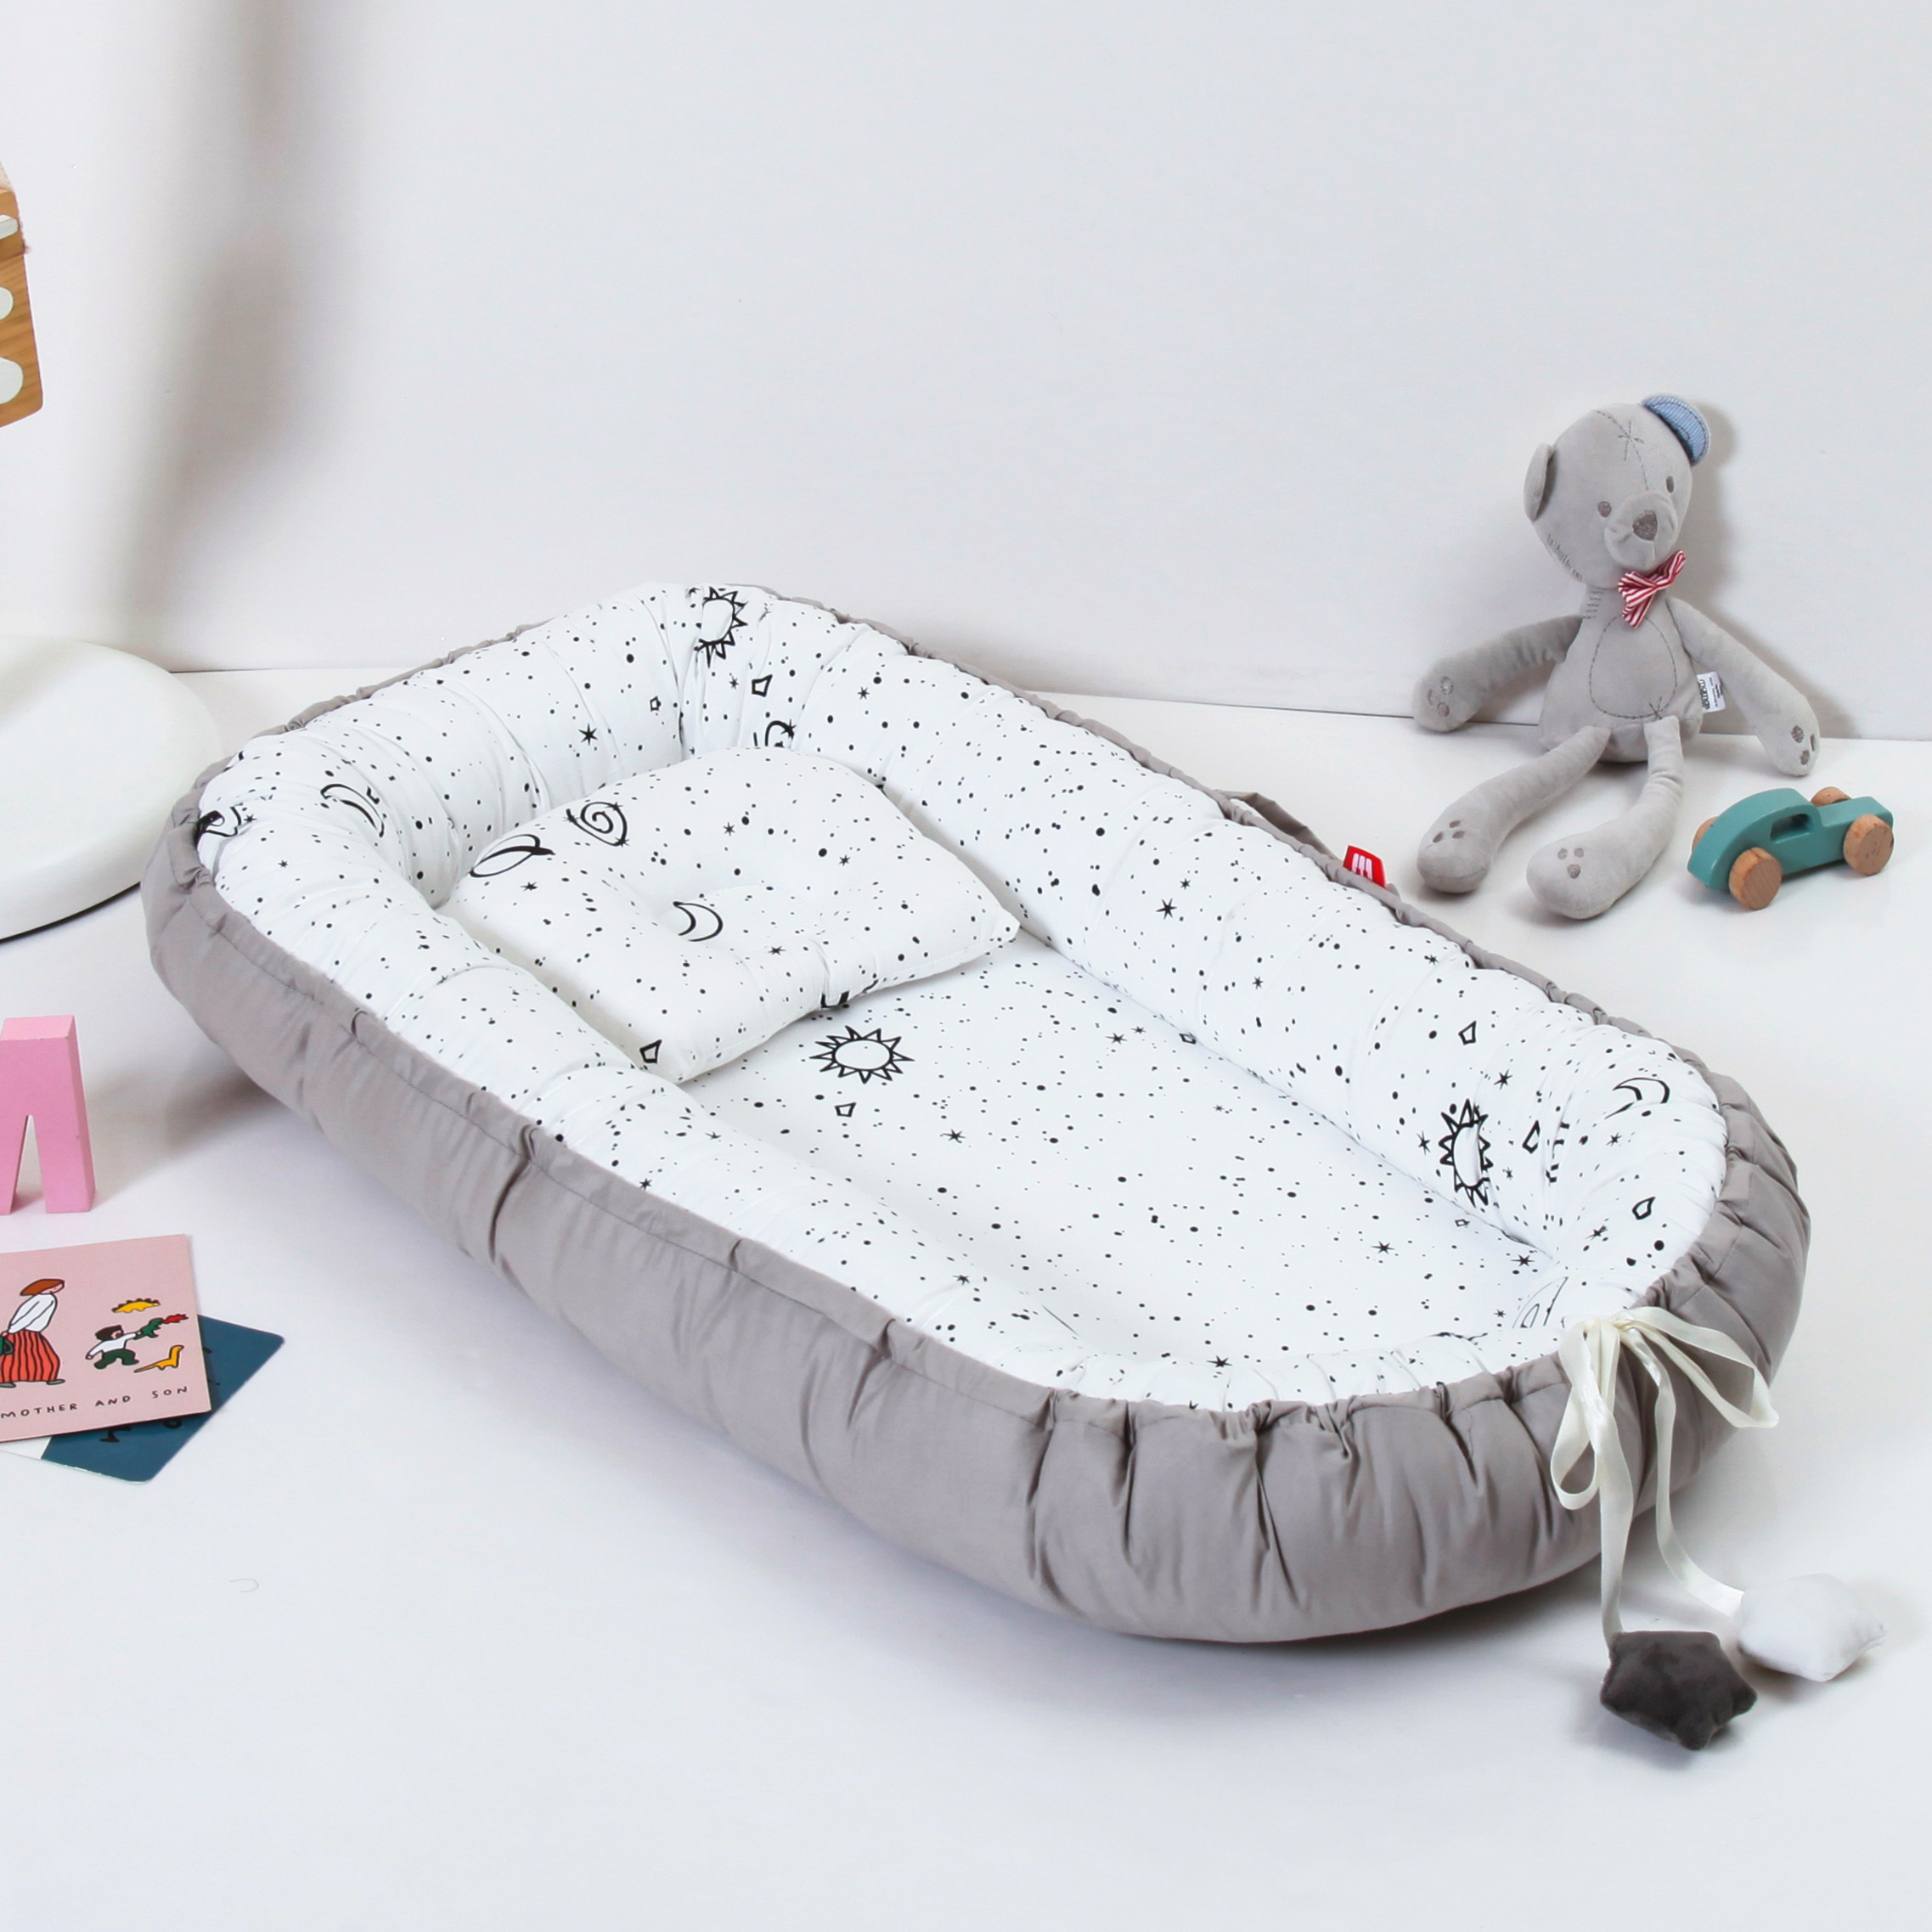 85X50cm Portable Baby Nest Newborn Crib Cradle Pillow Cushion Removable Bed Infant Cradle Cuna